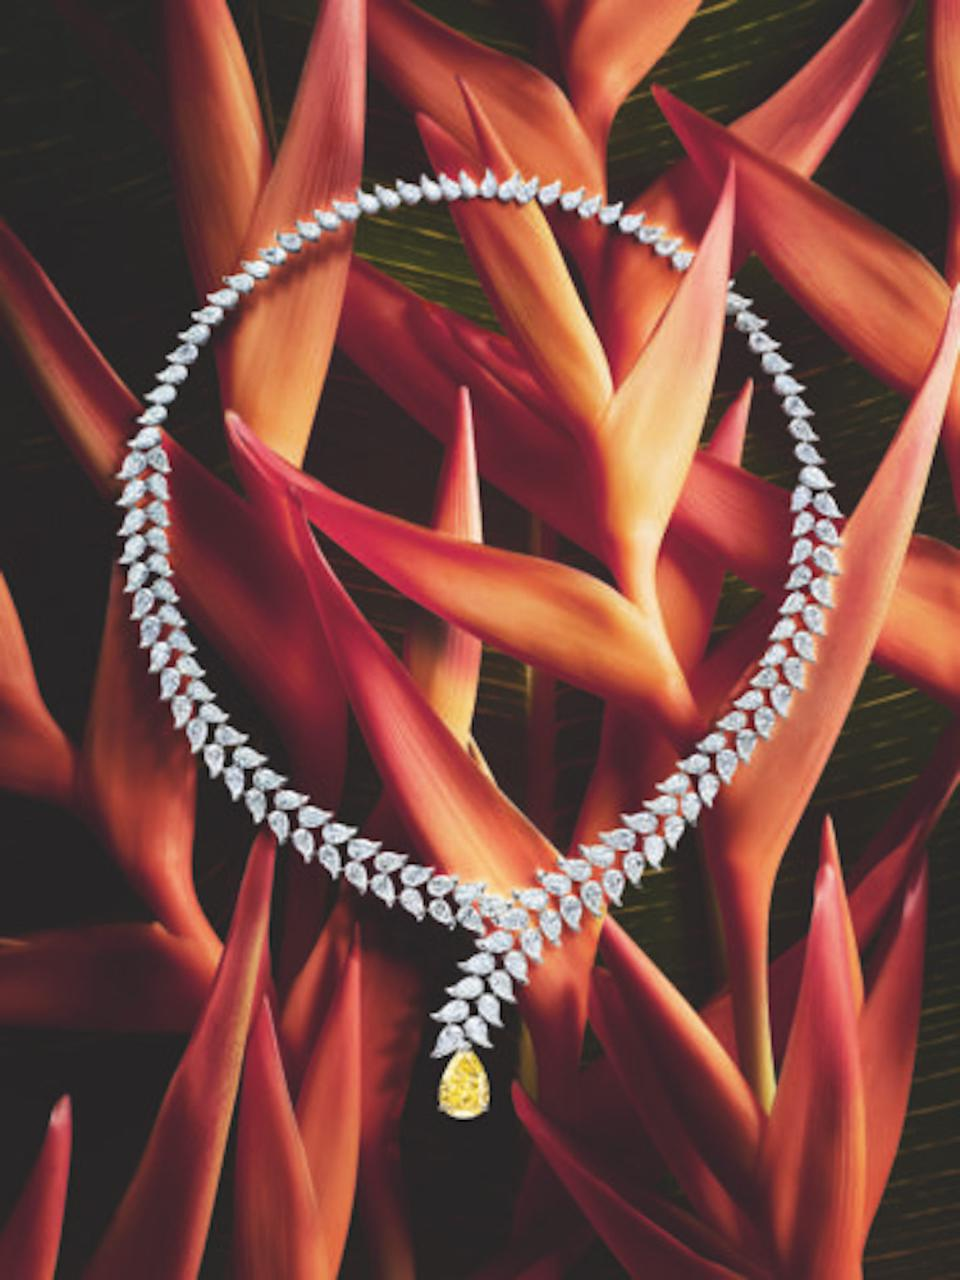 PIaget has long been a master at exquisite jewelry creations.